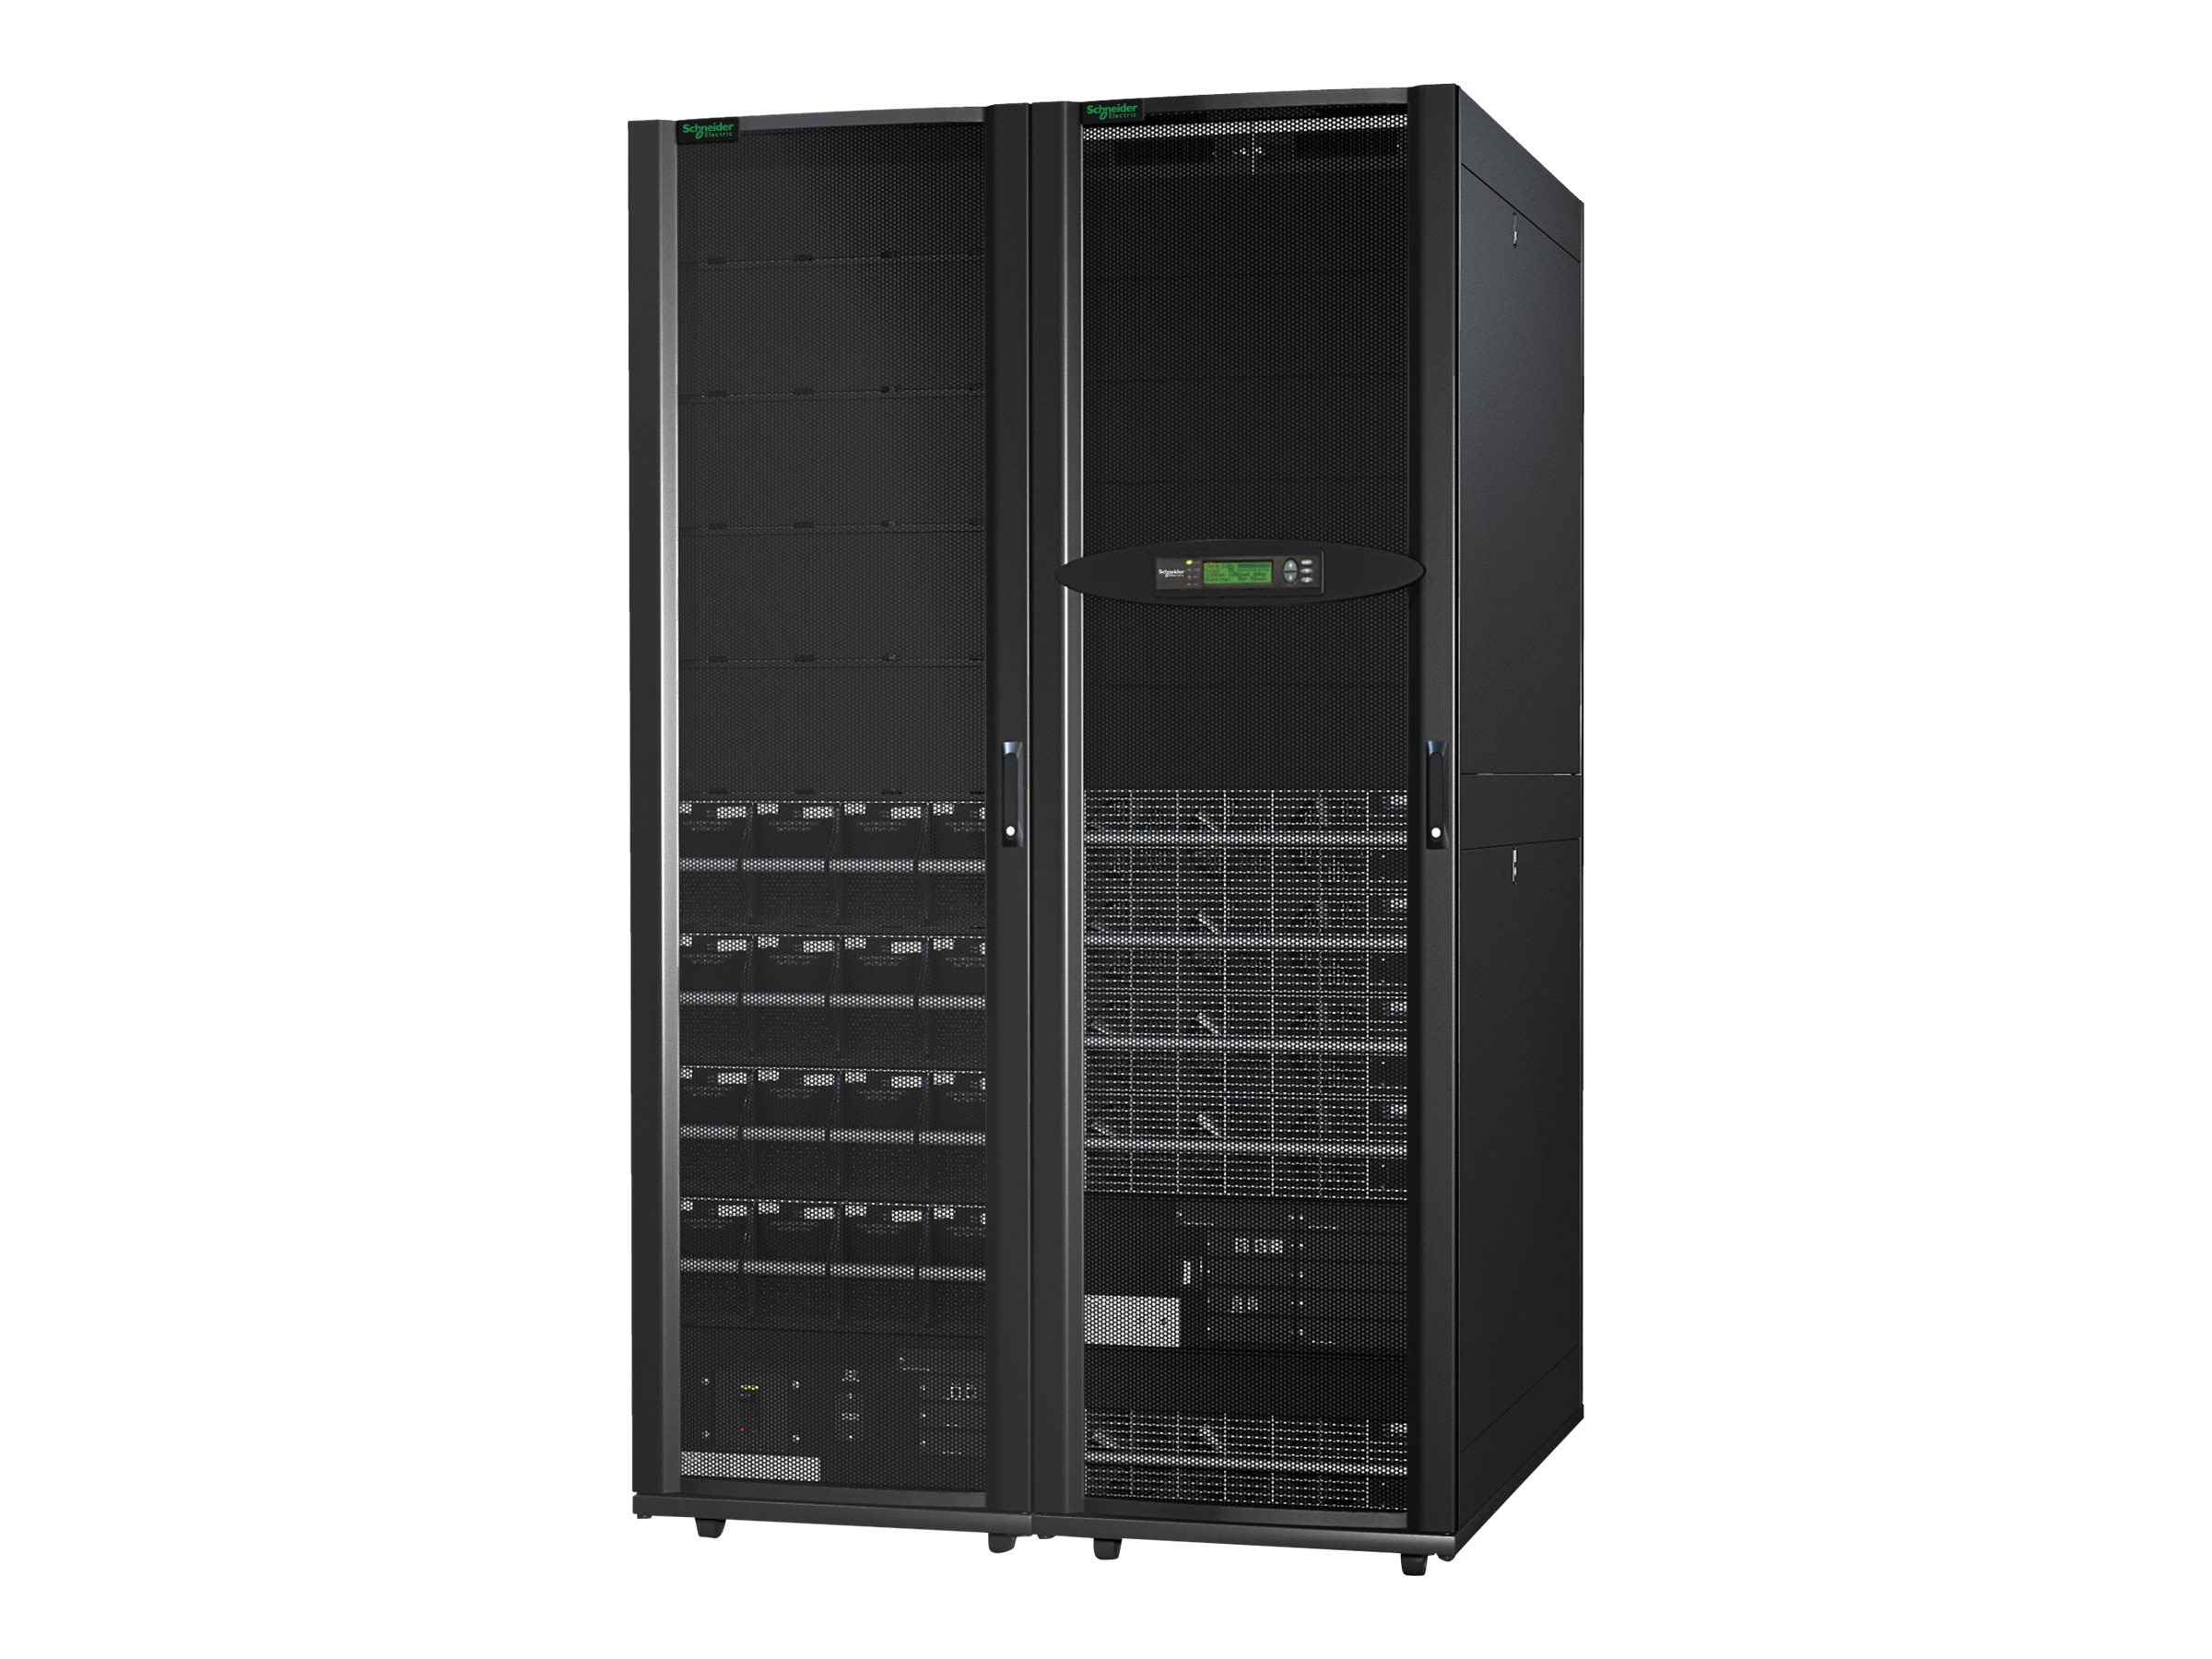 APC Symmetra PX 40kW Scalable to 100kW, 208V with Startup